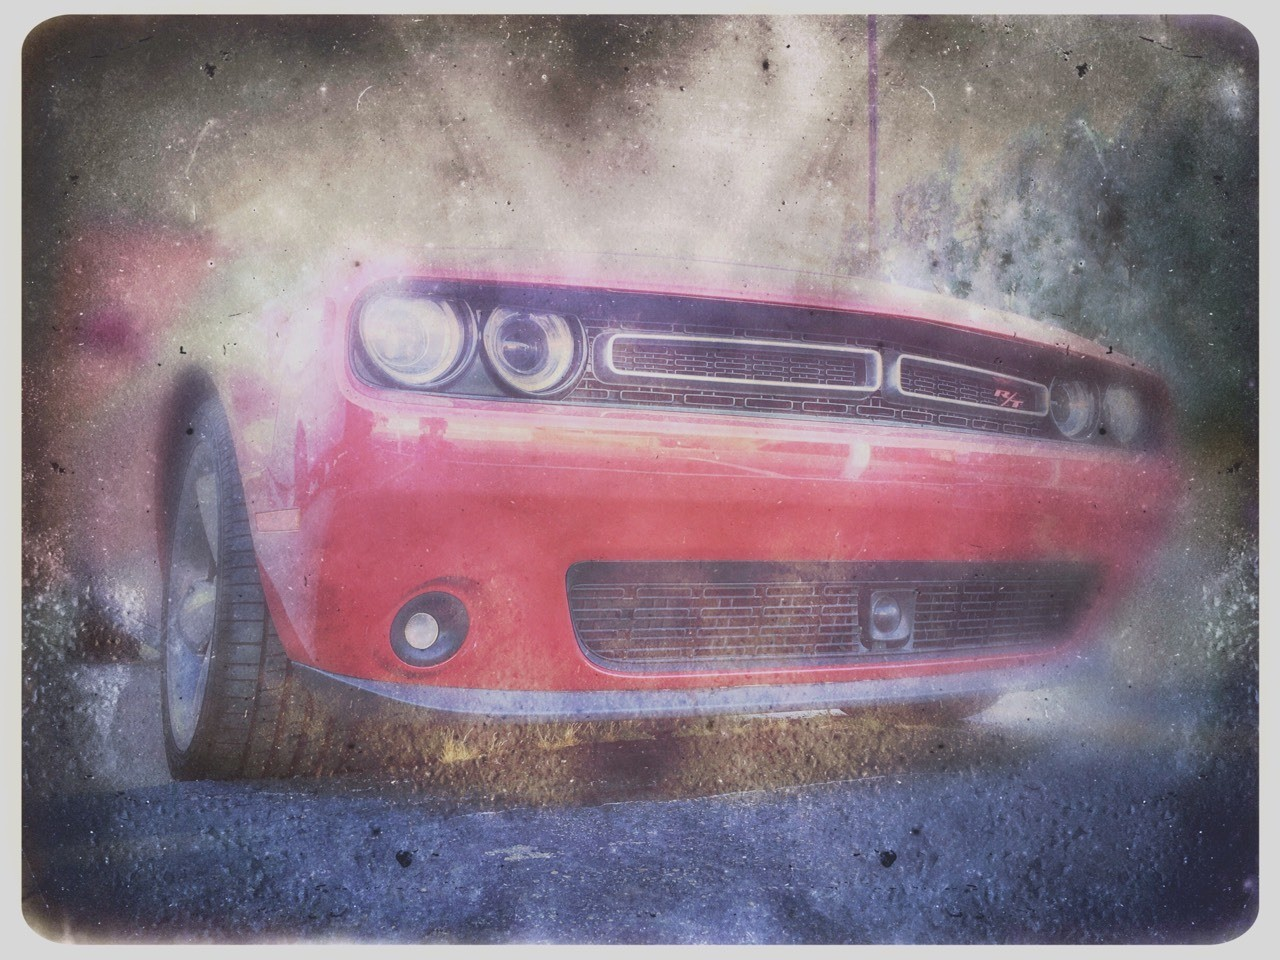 How To Take A Photo Of A Dirty Car Make the photo dirtier. #Dodge #challenger #rt #car #musclecar #fast #dirt #hipstamatic #cars #carsofinstagram #Red #instagram #instructions